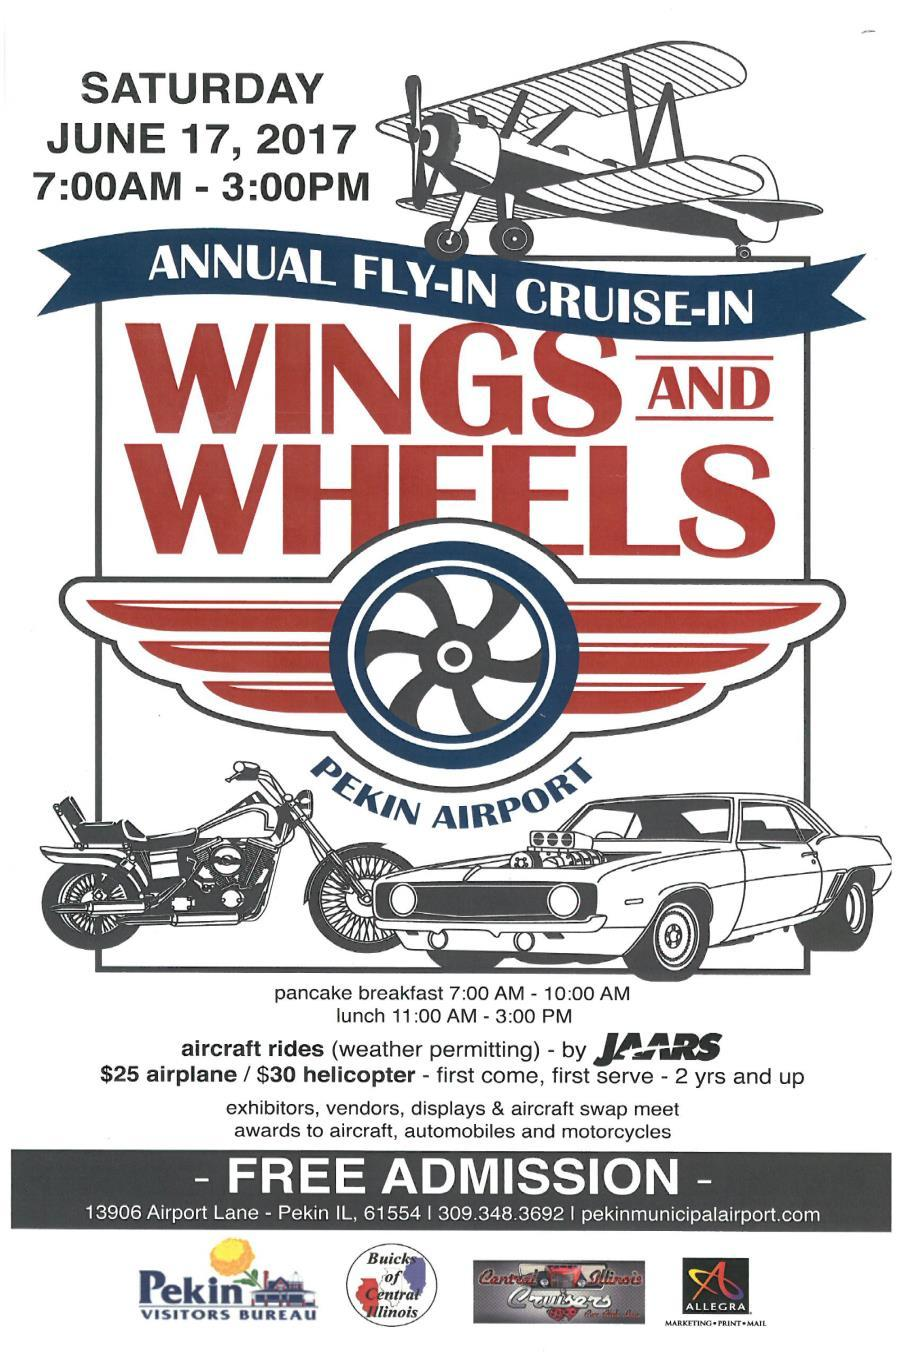 Its time for the pekin airport wings and wheels this saturday. I hope the club will have more planes,gliders,helicopters and drones on display than we had last year.